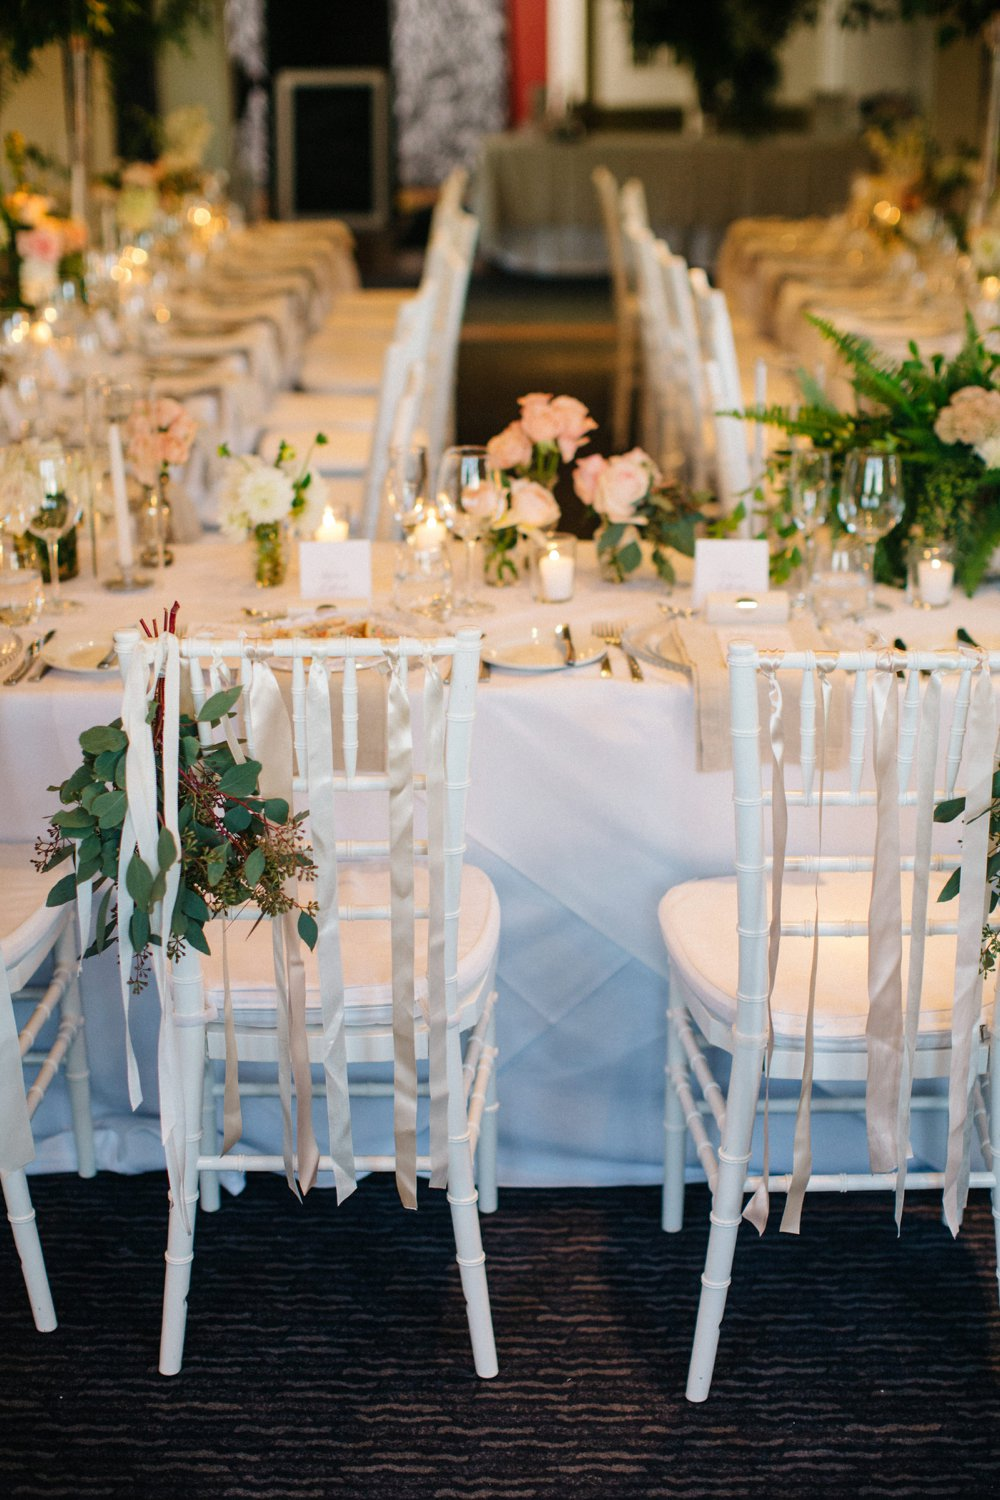 White Tiffany chairs with ribbons for bridal table